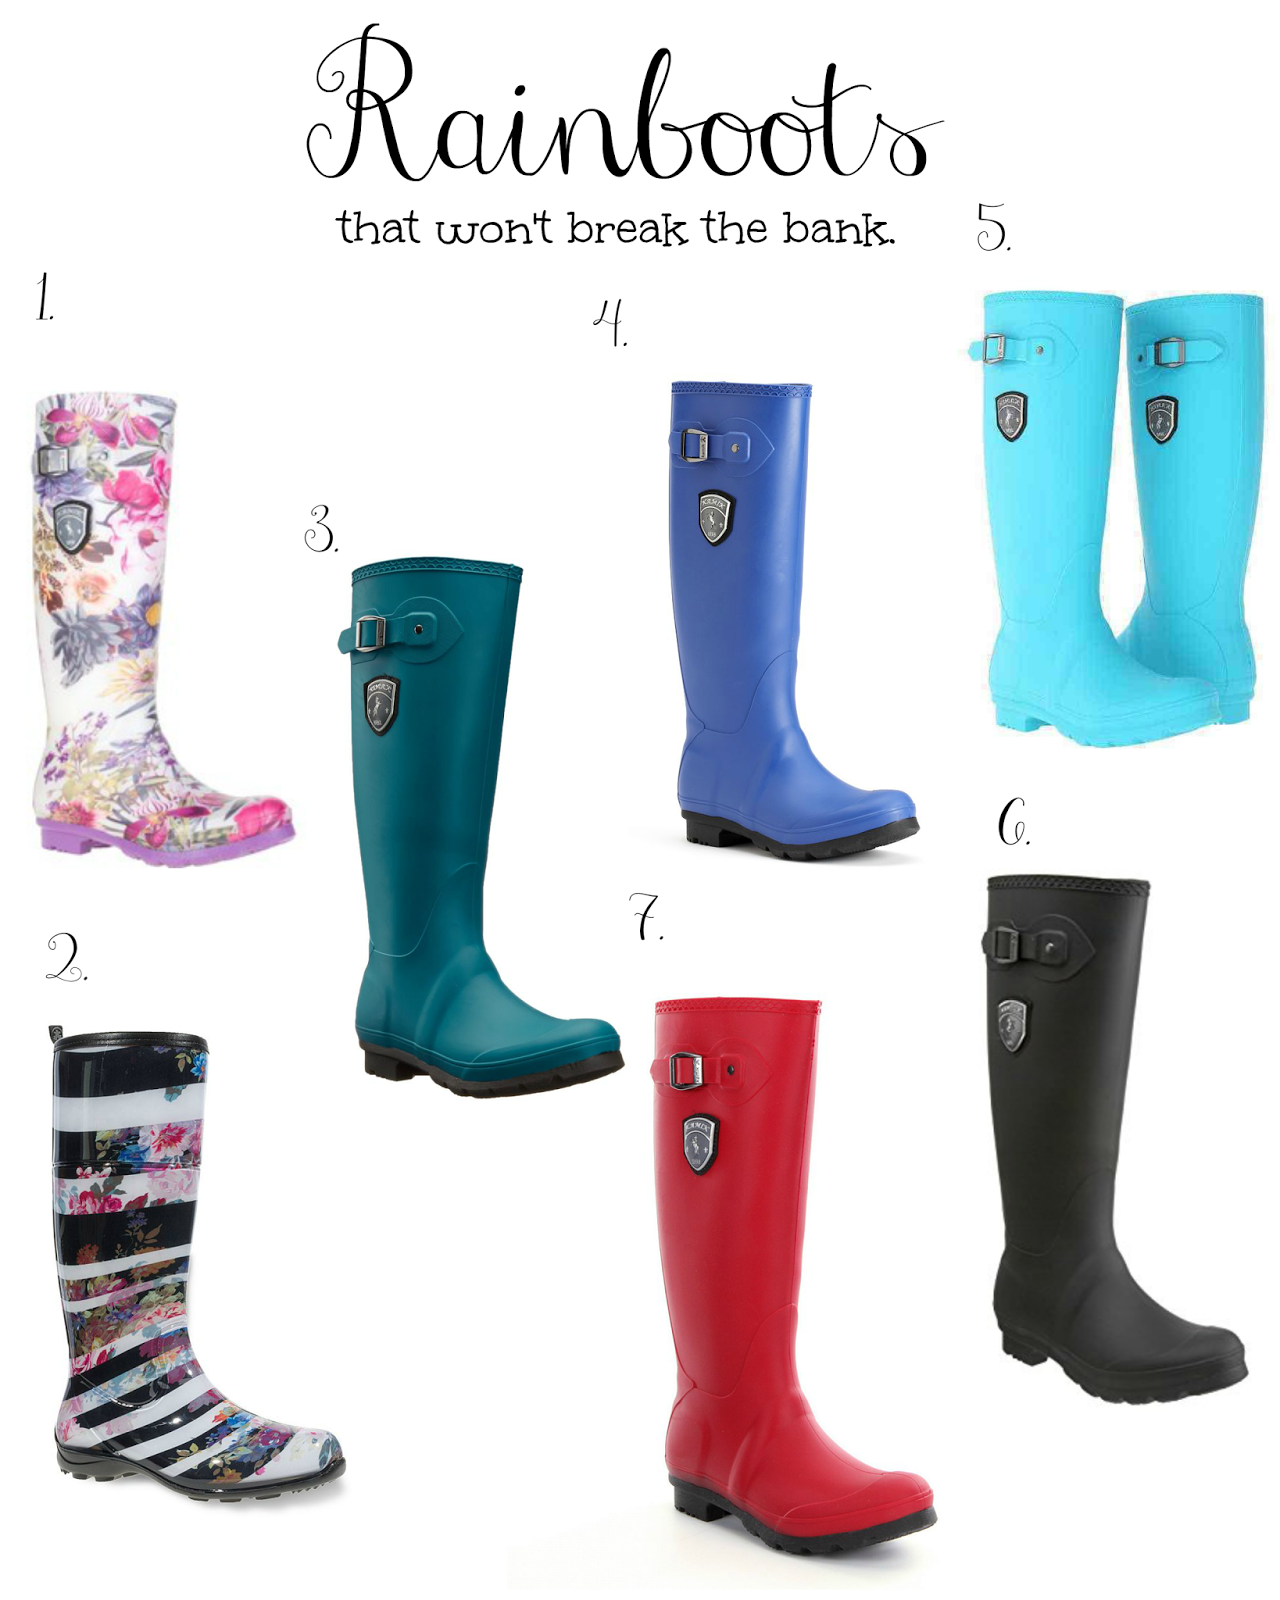 Rain boots that wont break the bank. graphic